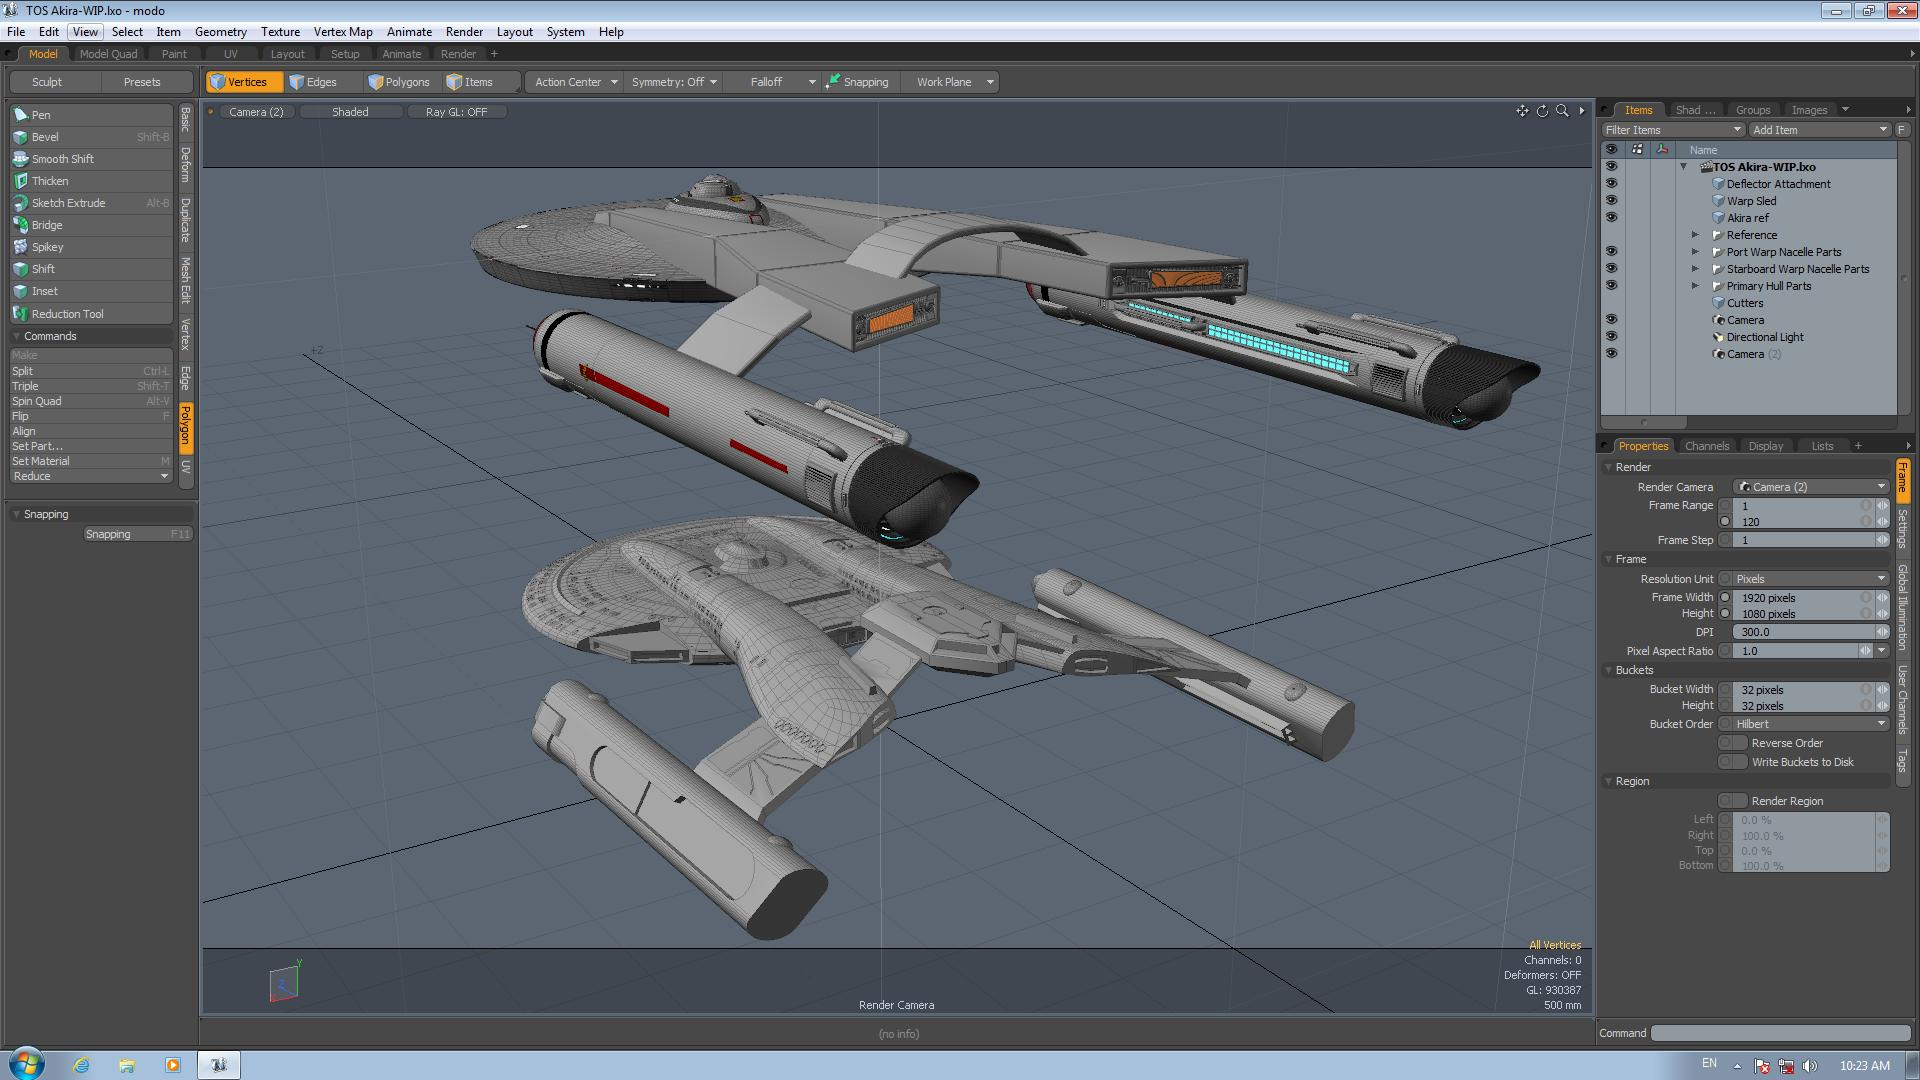 TOS Akira - Early WIP